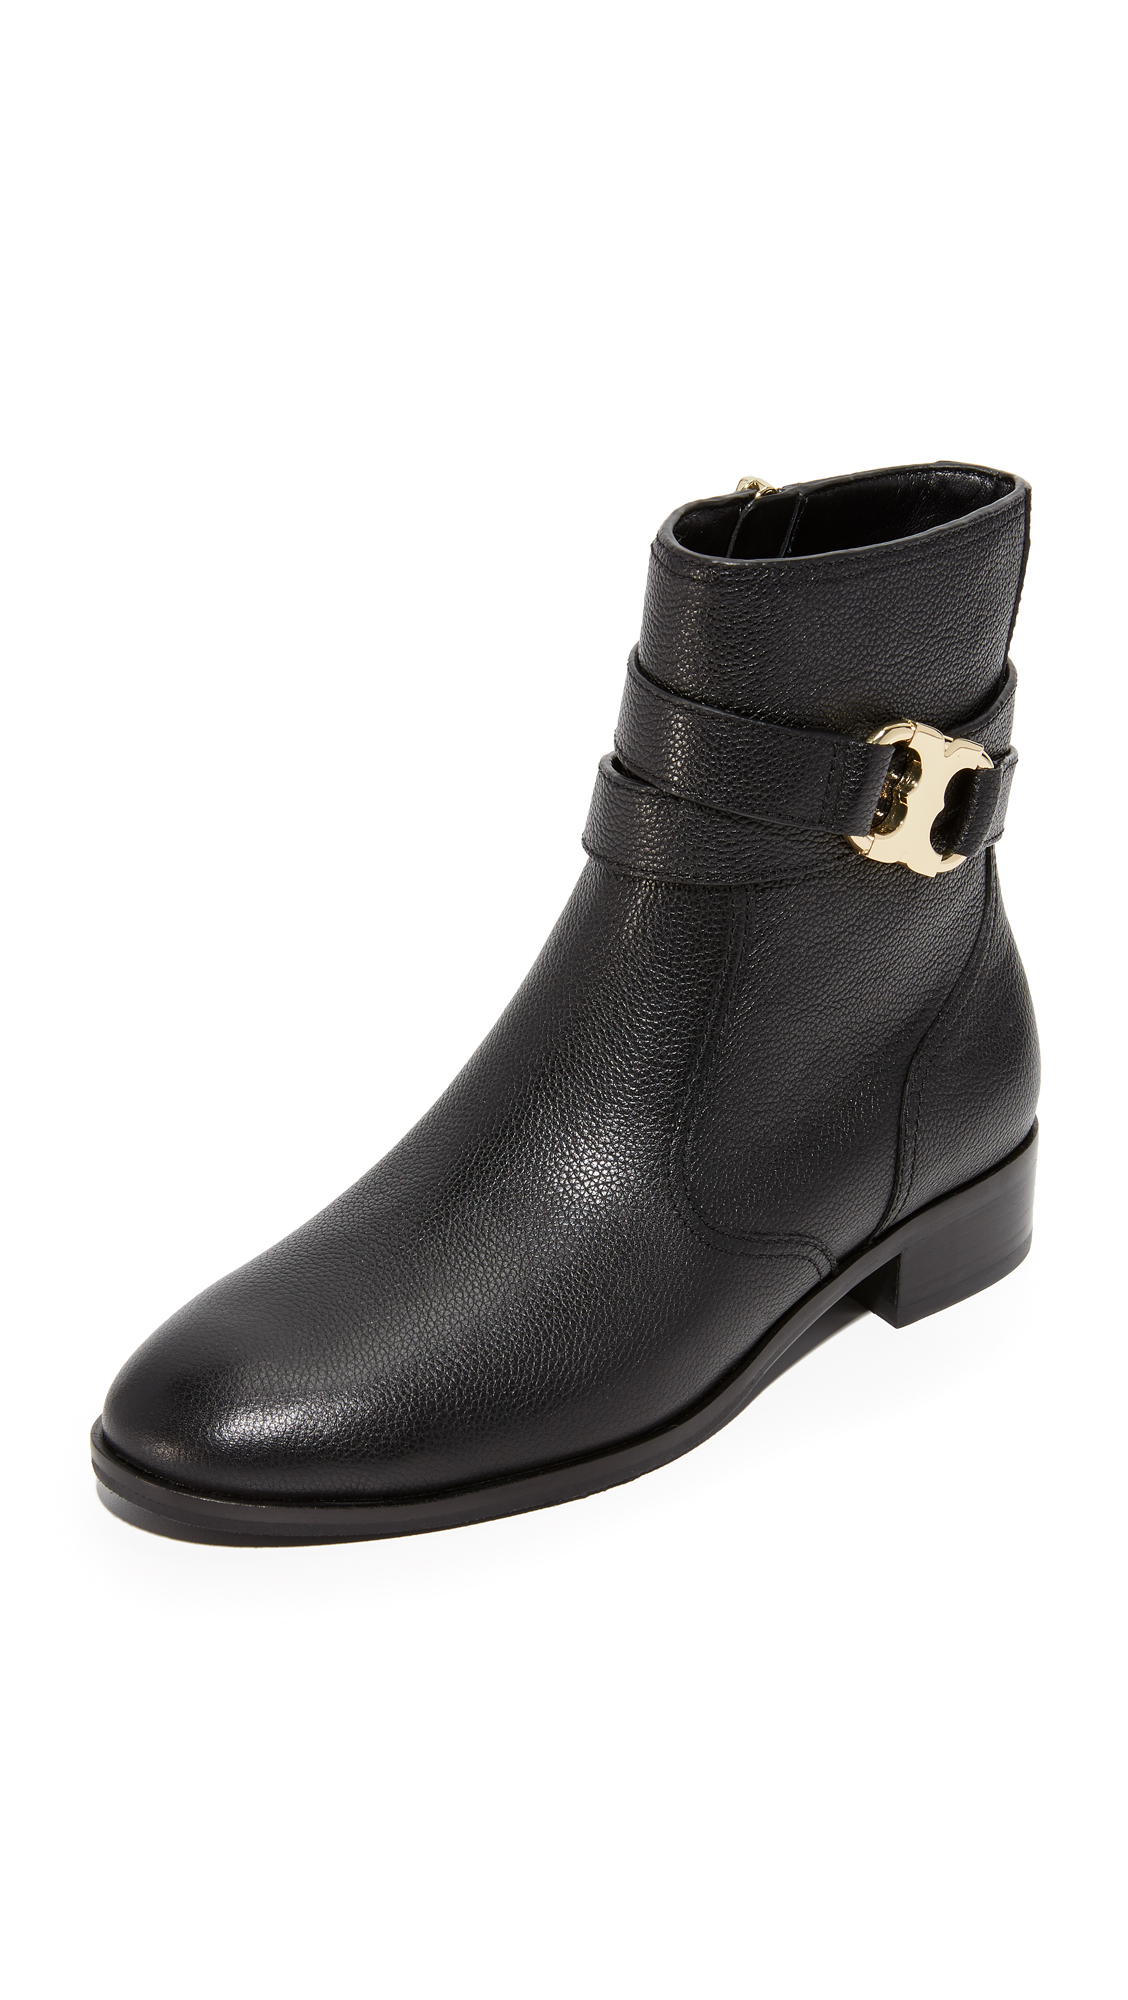 Tory Burch Gemini Link Booties - Black